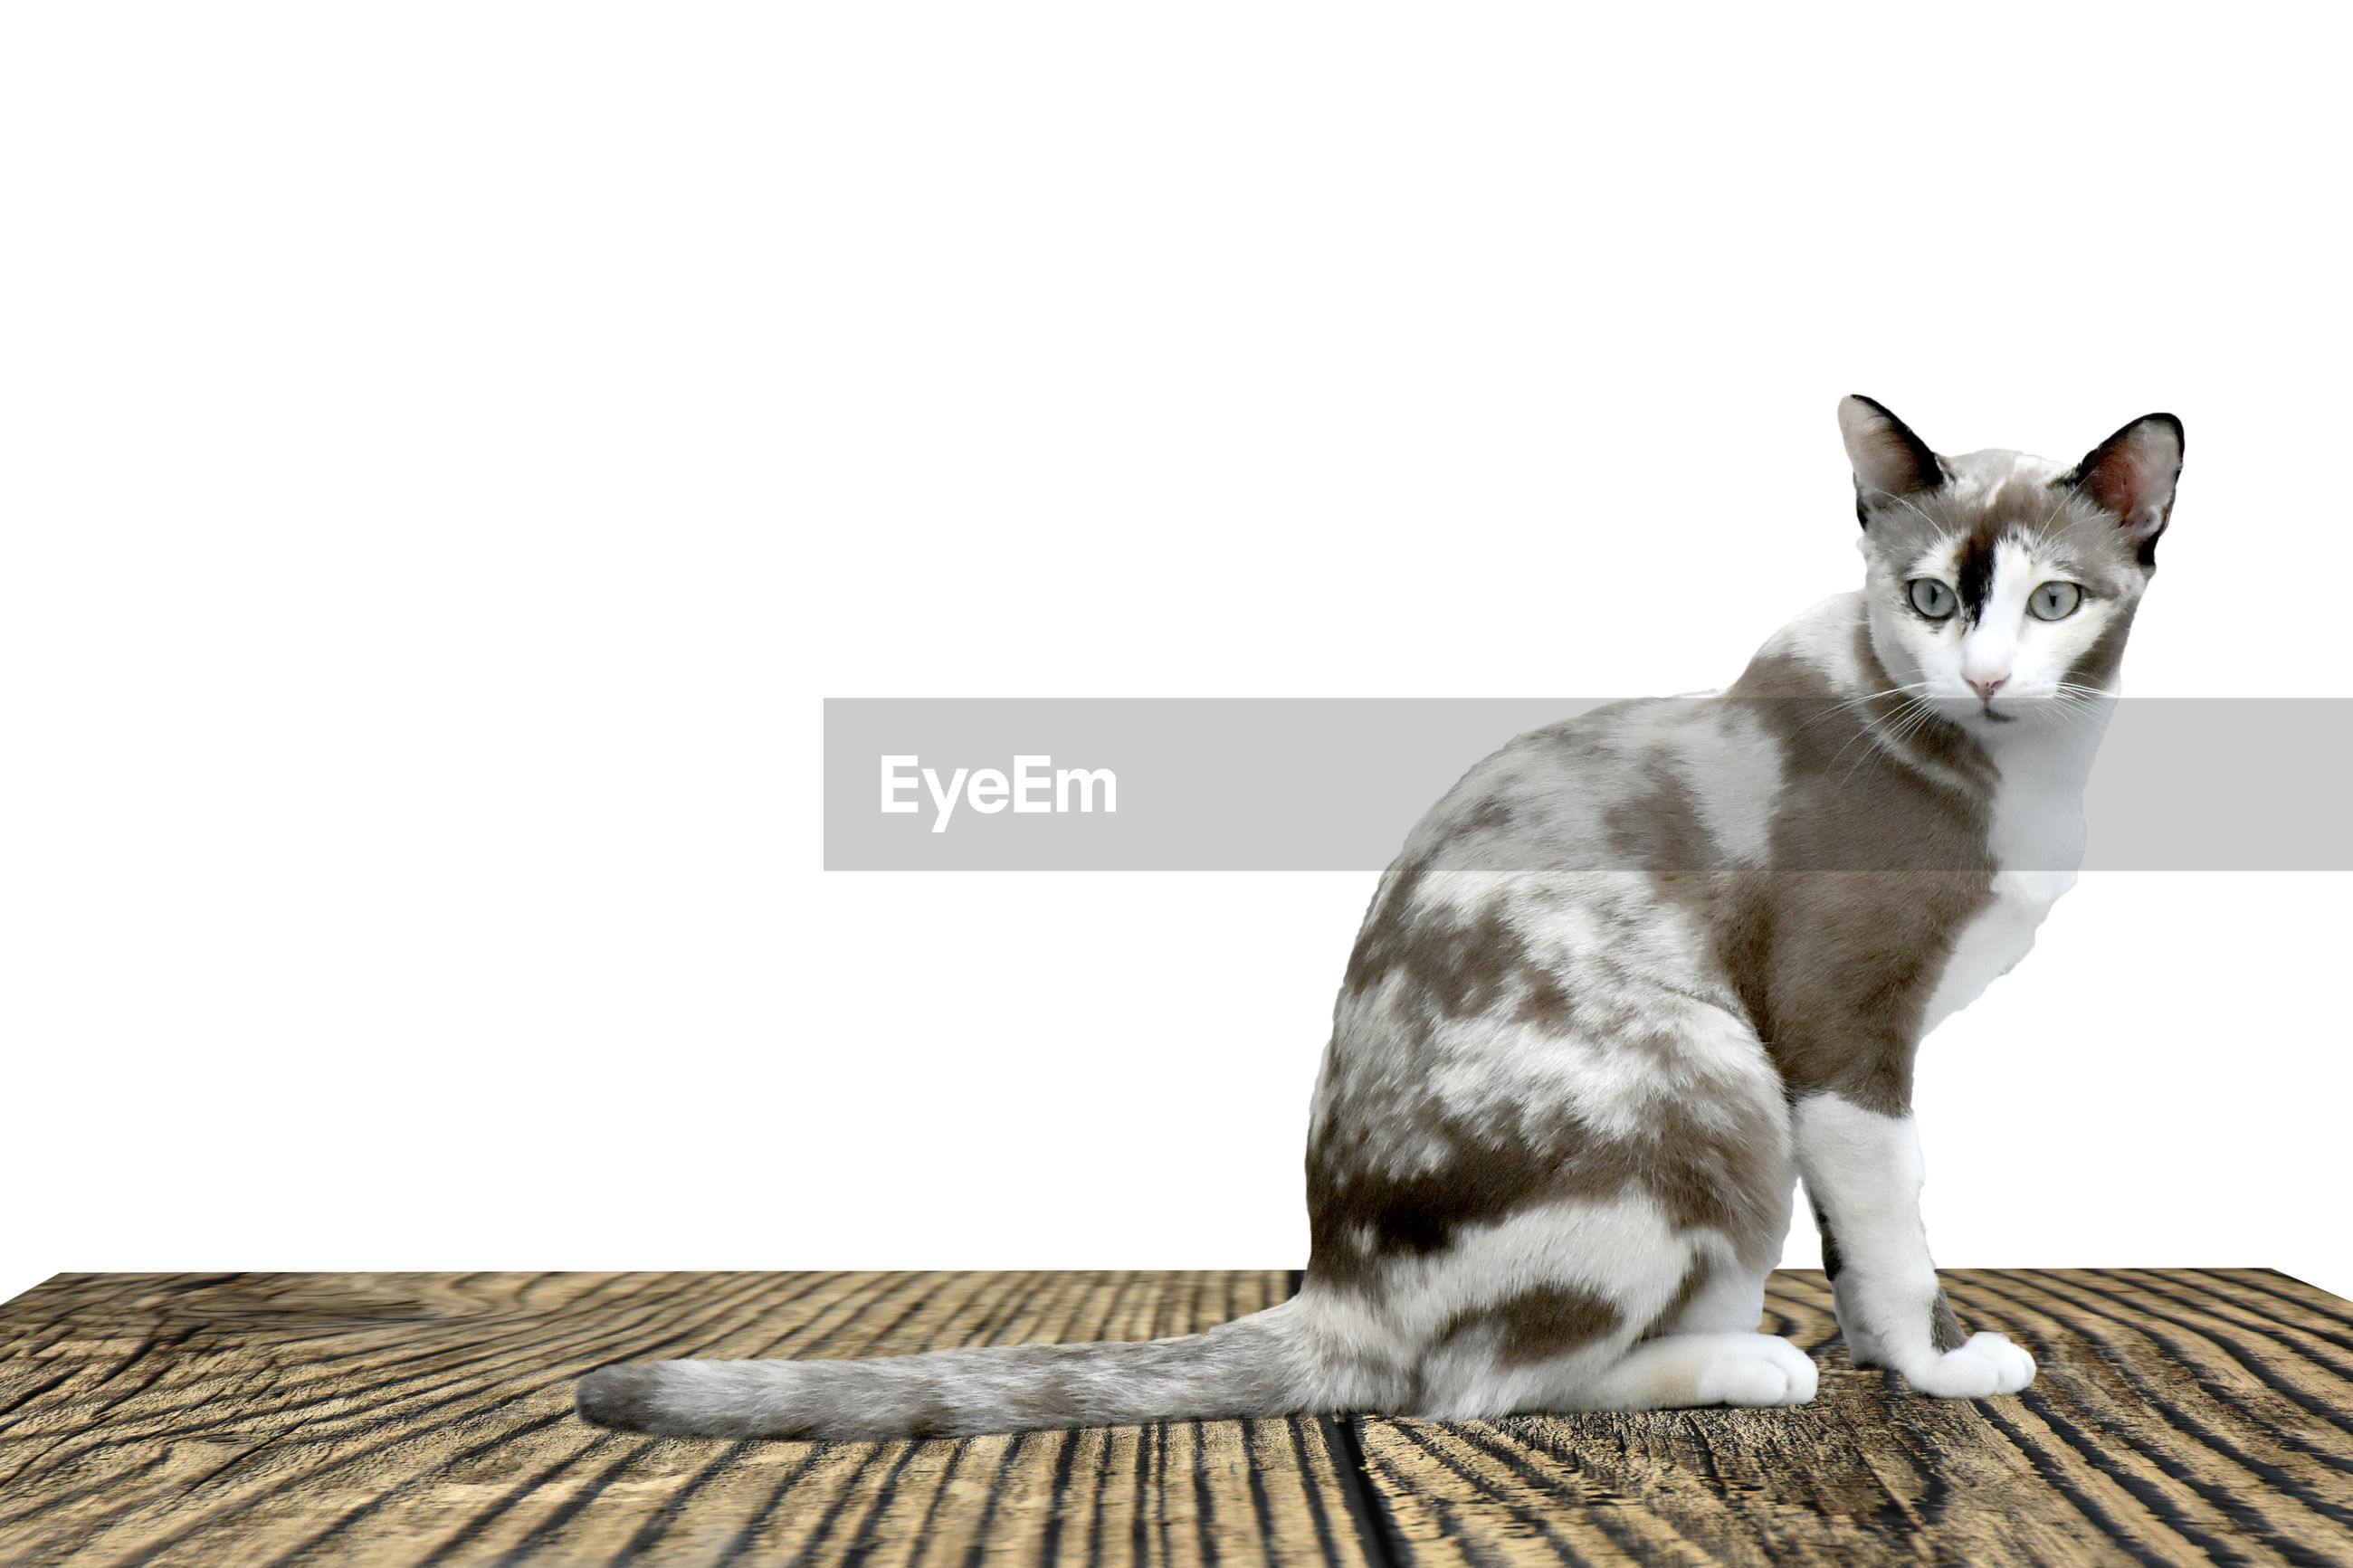 Portrait of cat sitting on wood against white background